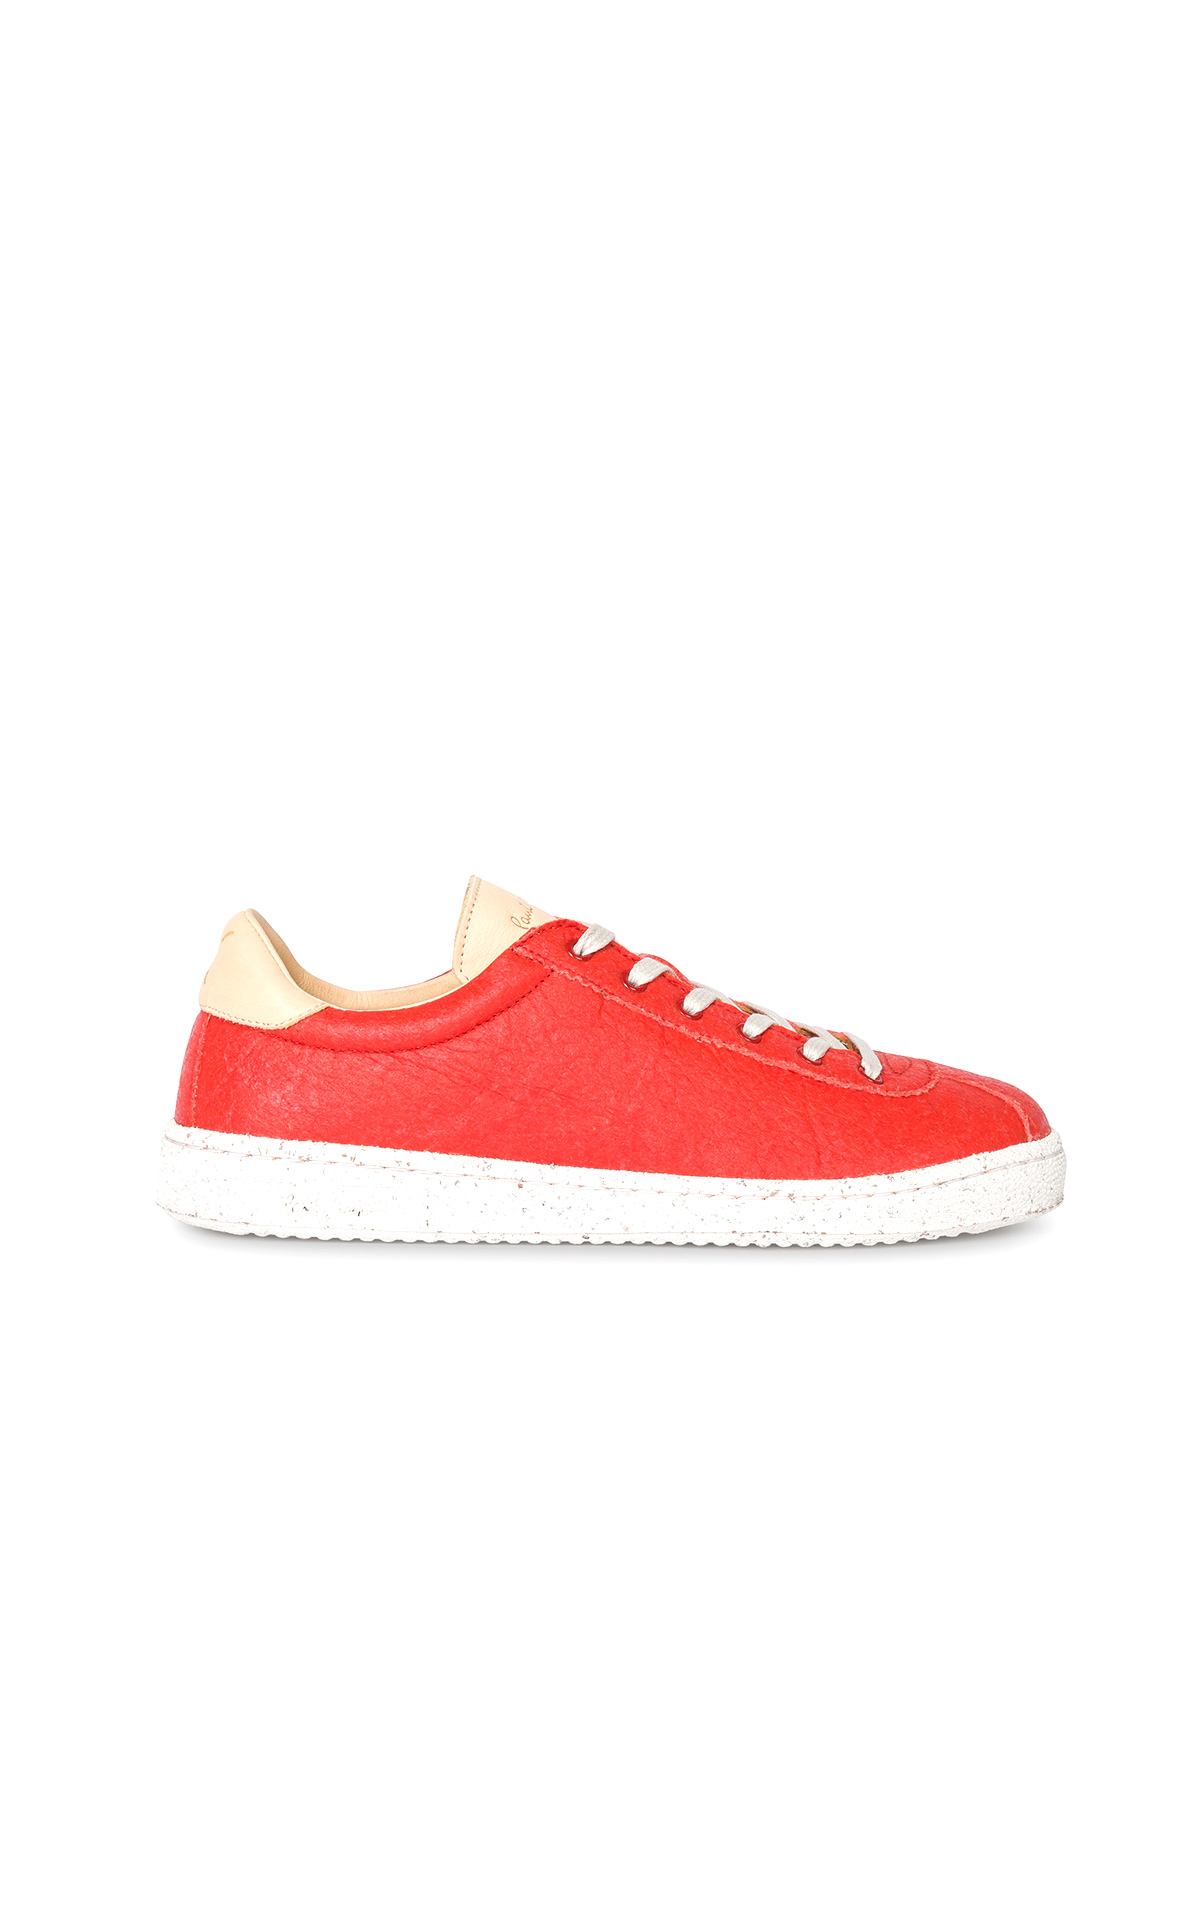 La Vallée Village Paul Smith Baskets Dusty orange